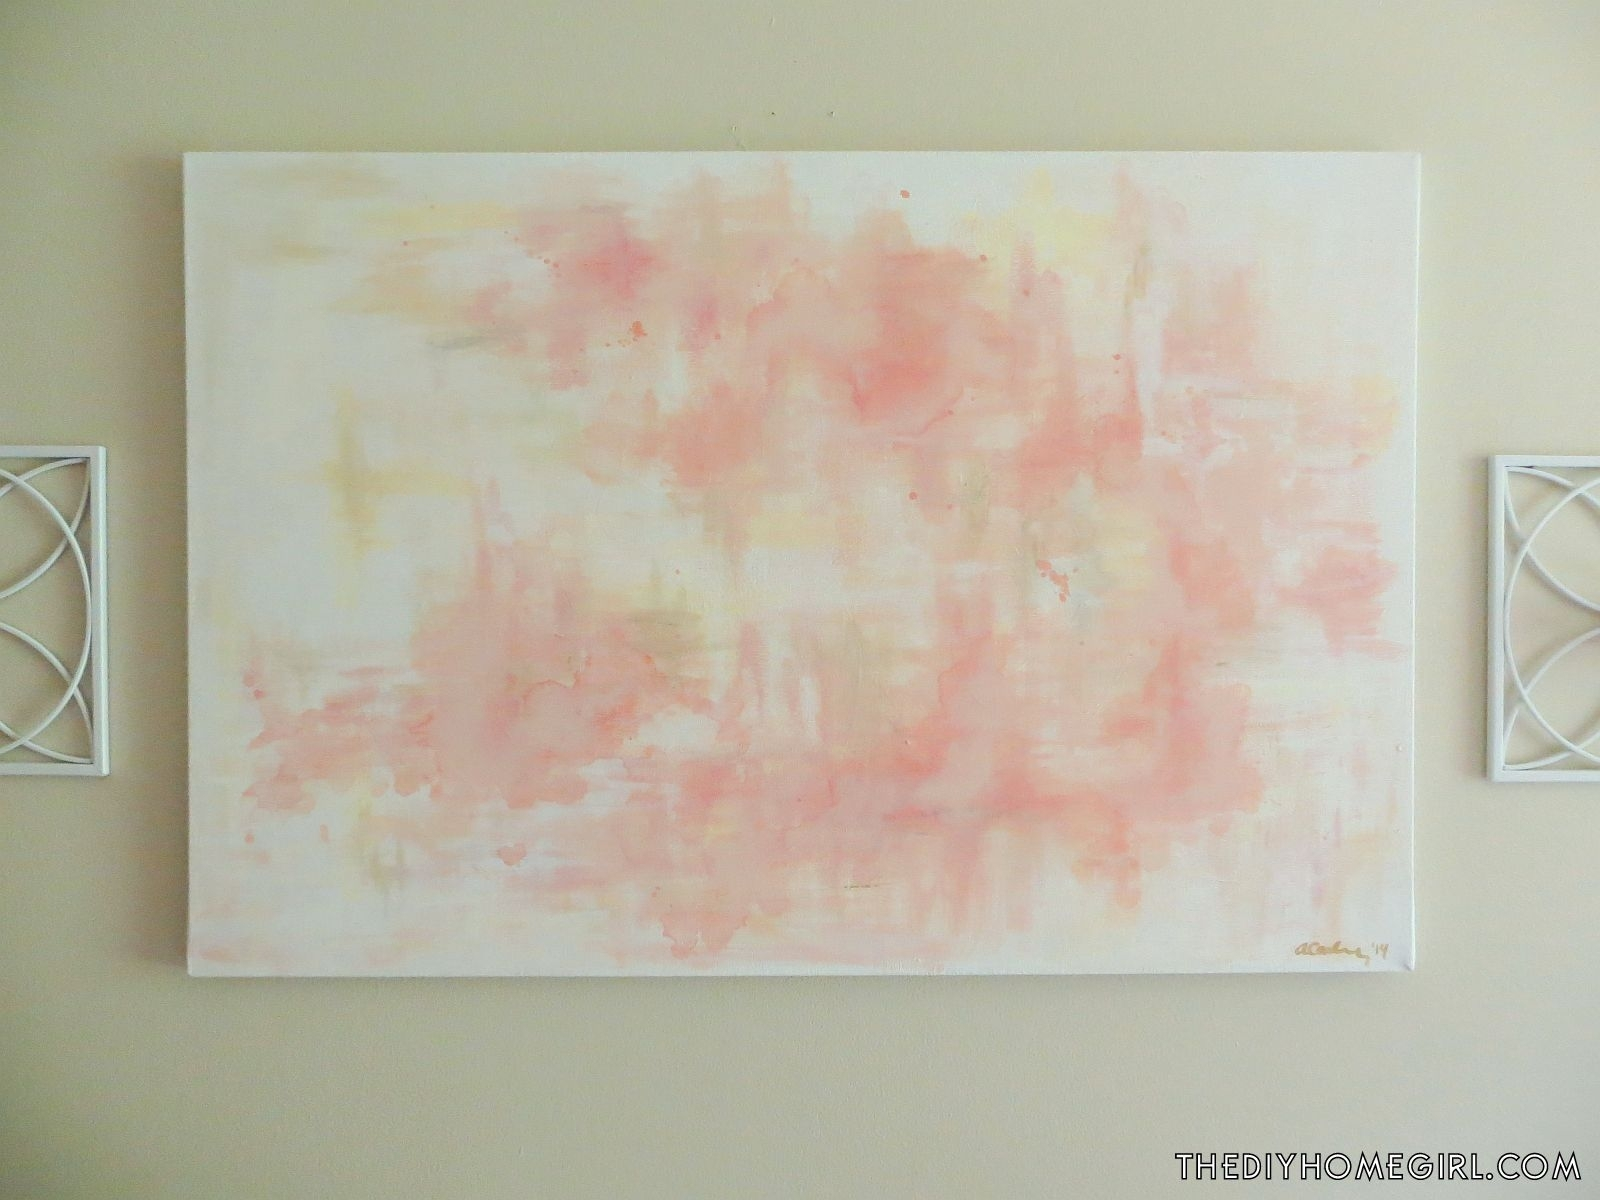 Diy Abstract Wall Art Salmon Shrimp Toast Pink Rose Gold Silver For Most Popular Diy Abstract Wall Art (View 5 of 20)